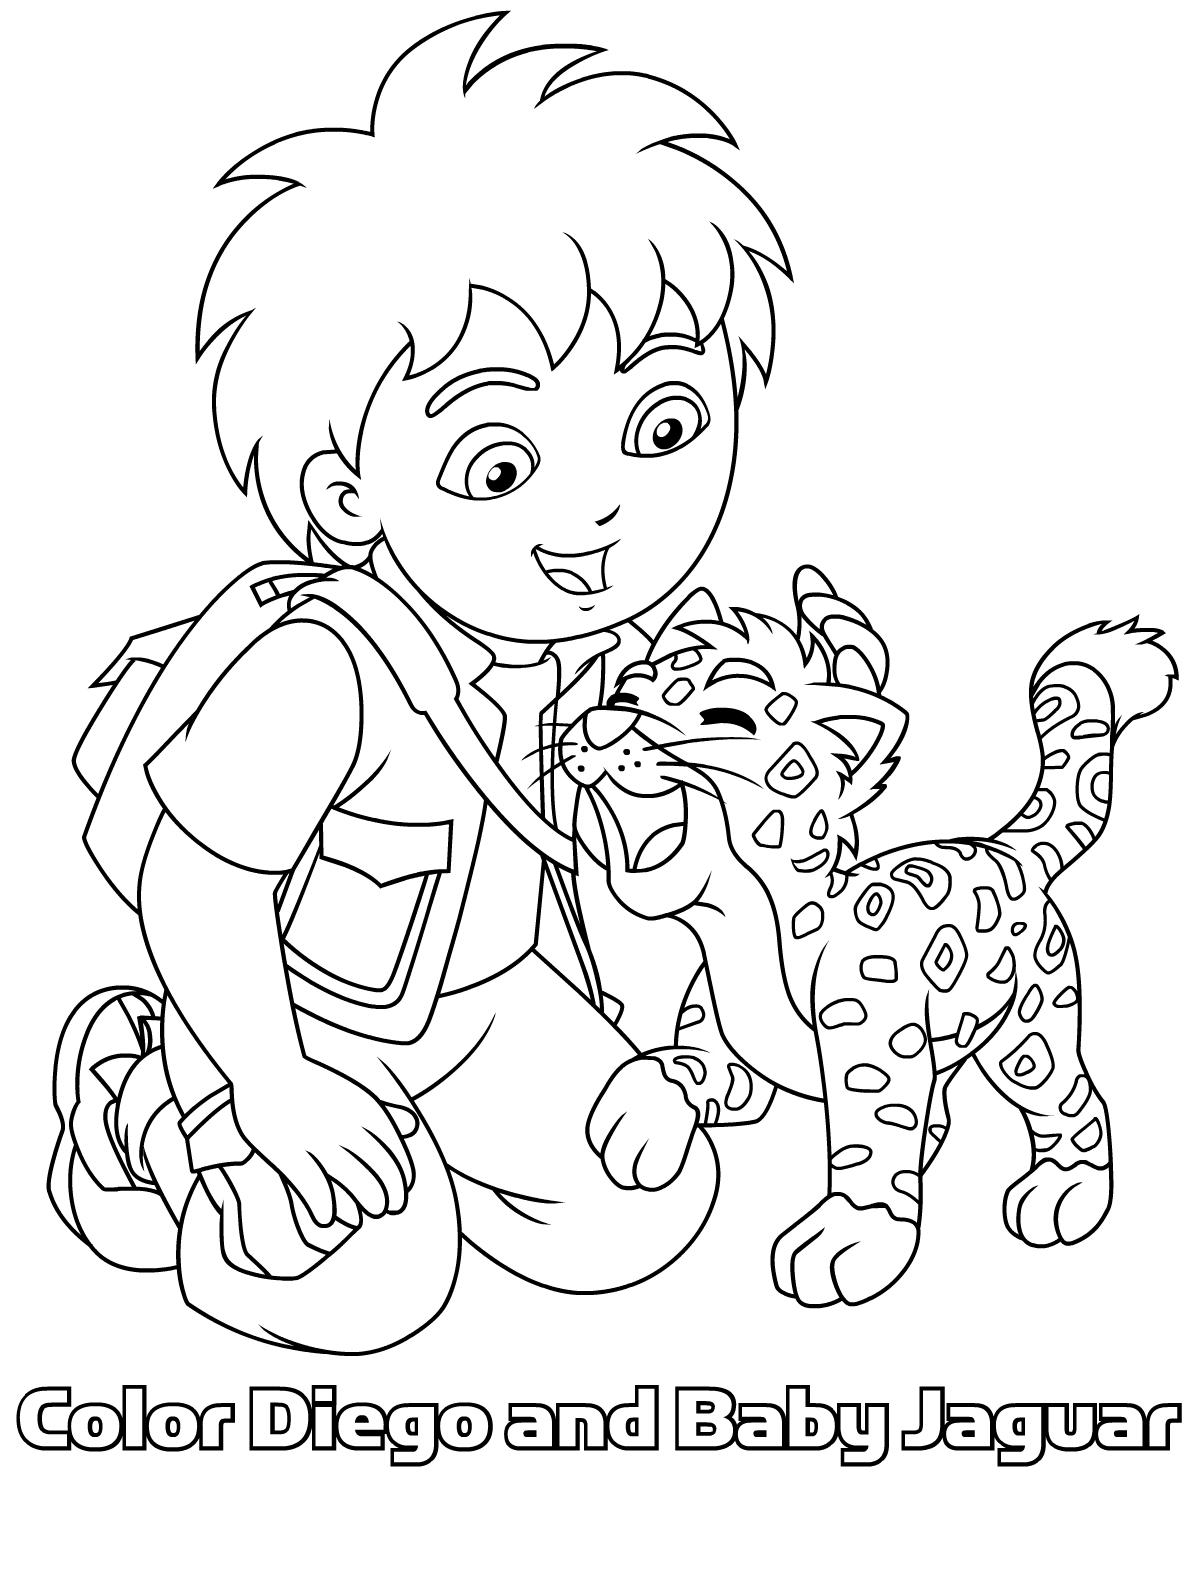 Free Printable Diego Coloring Pages For Kids Free Colouring Pages